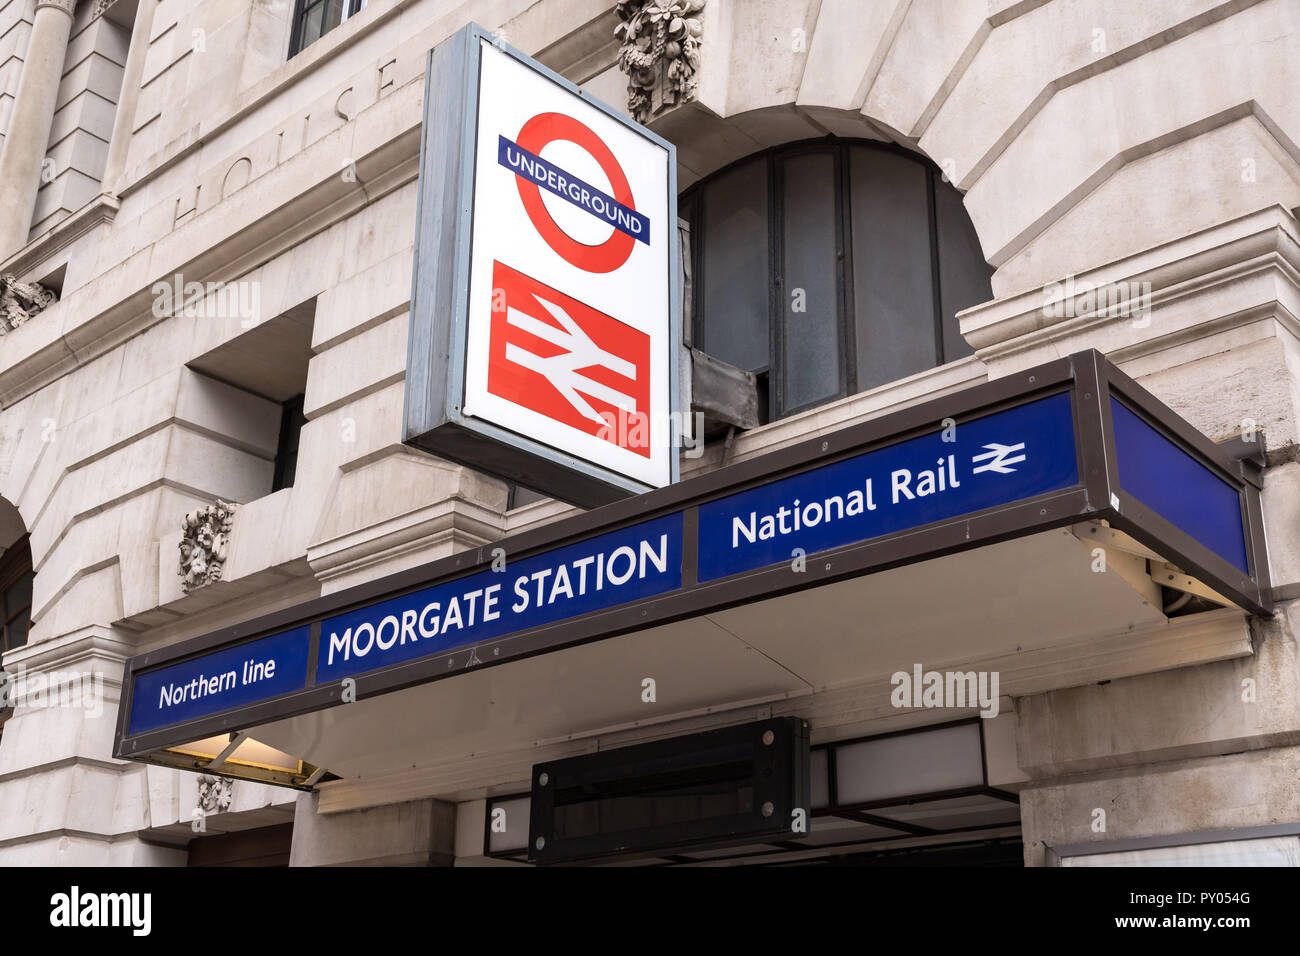 Moorgate London Underground station entrance with sign above - Stock Image